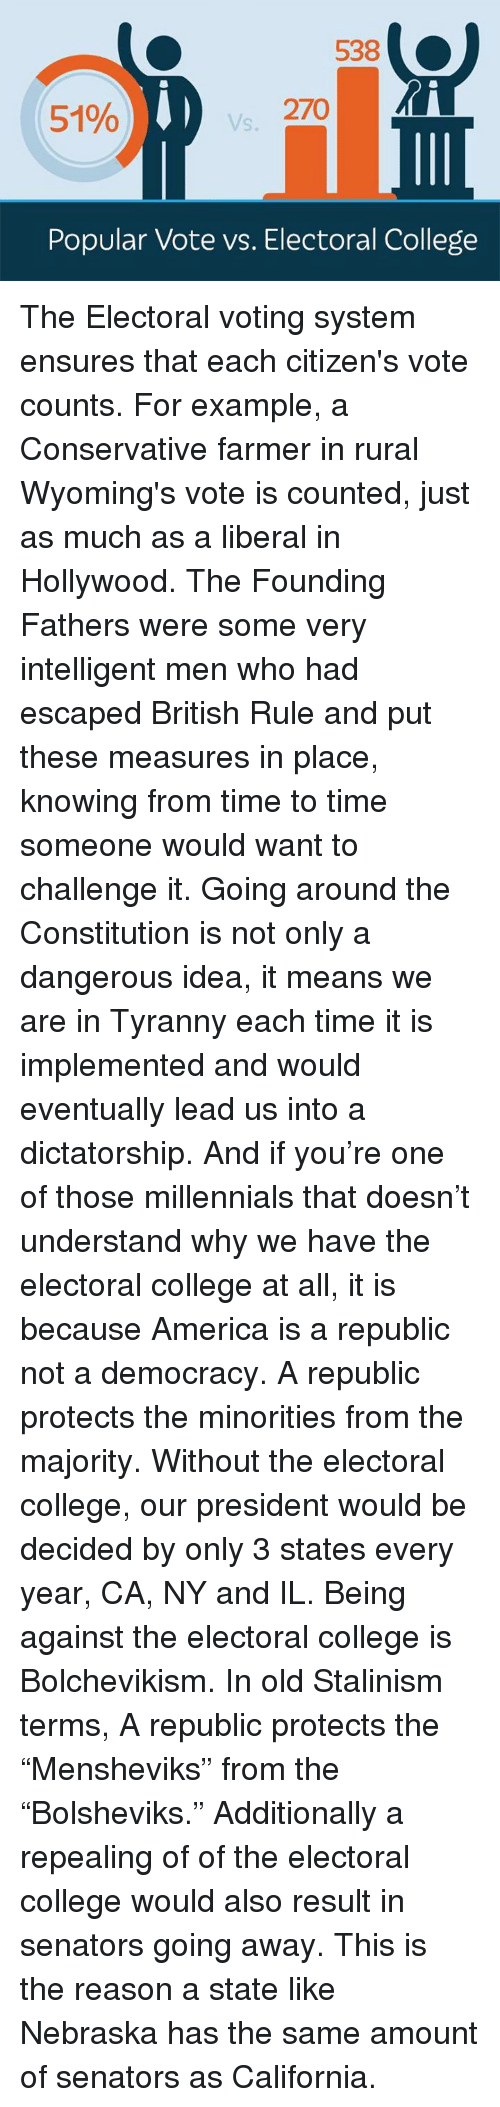 electorial college essays Write an essay of 750-1,000 words in which you: 1 describe the structure and function of the electoral college how and when was it created in the us why was it.